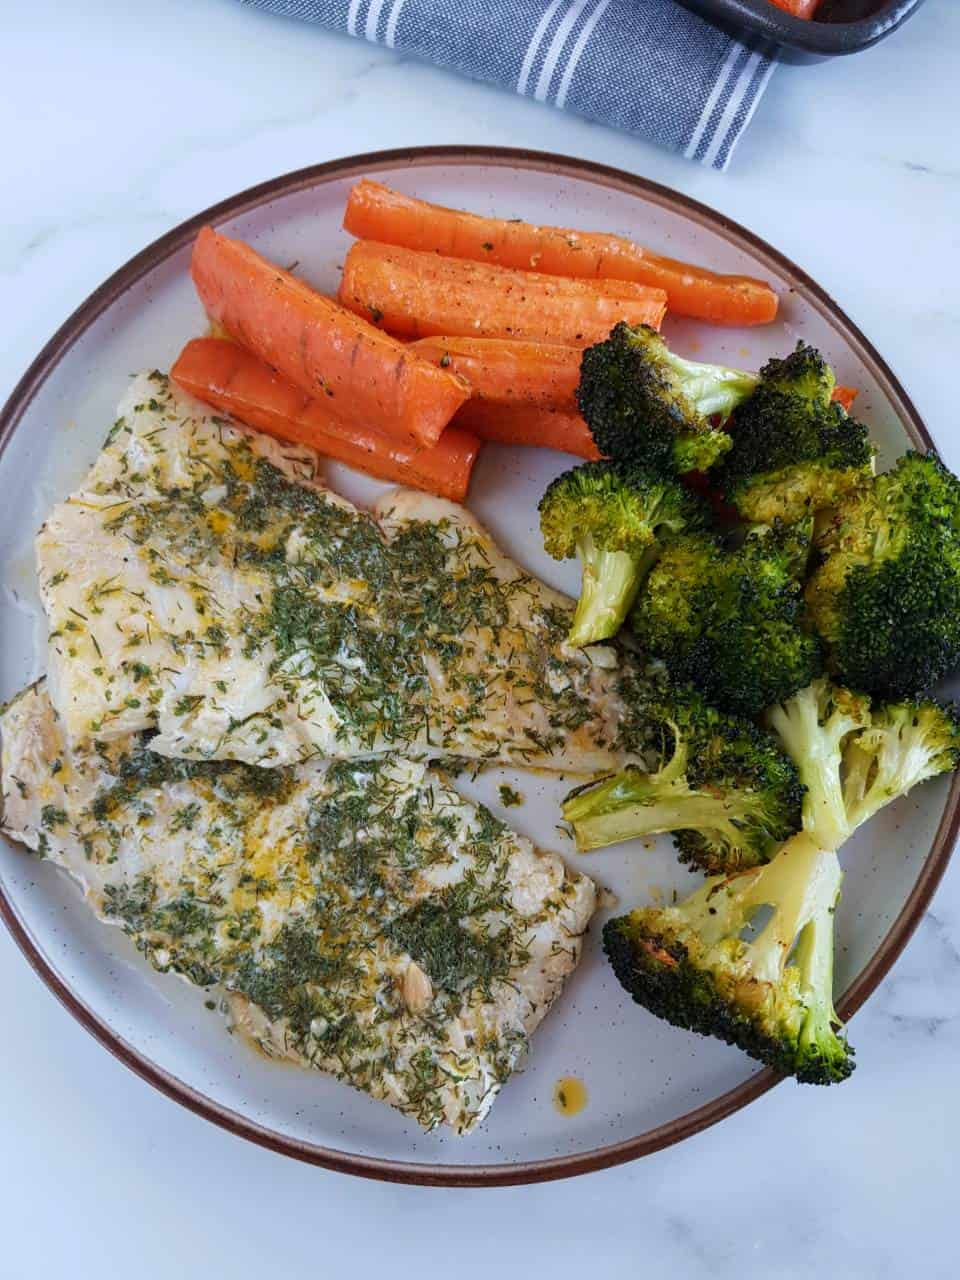 Herbed cod on a plate with roasted broccoli and carrots.